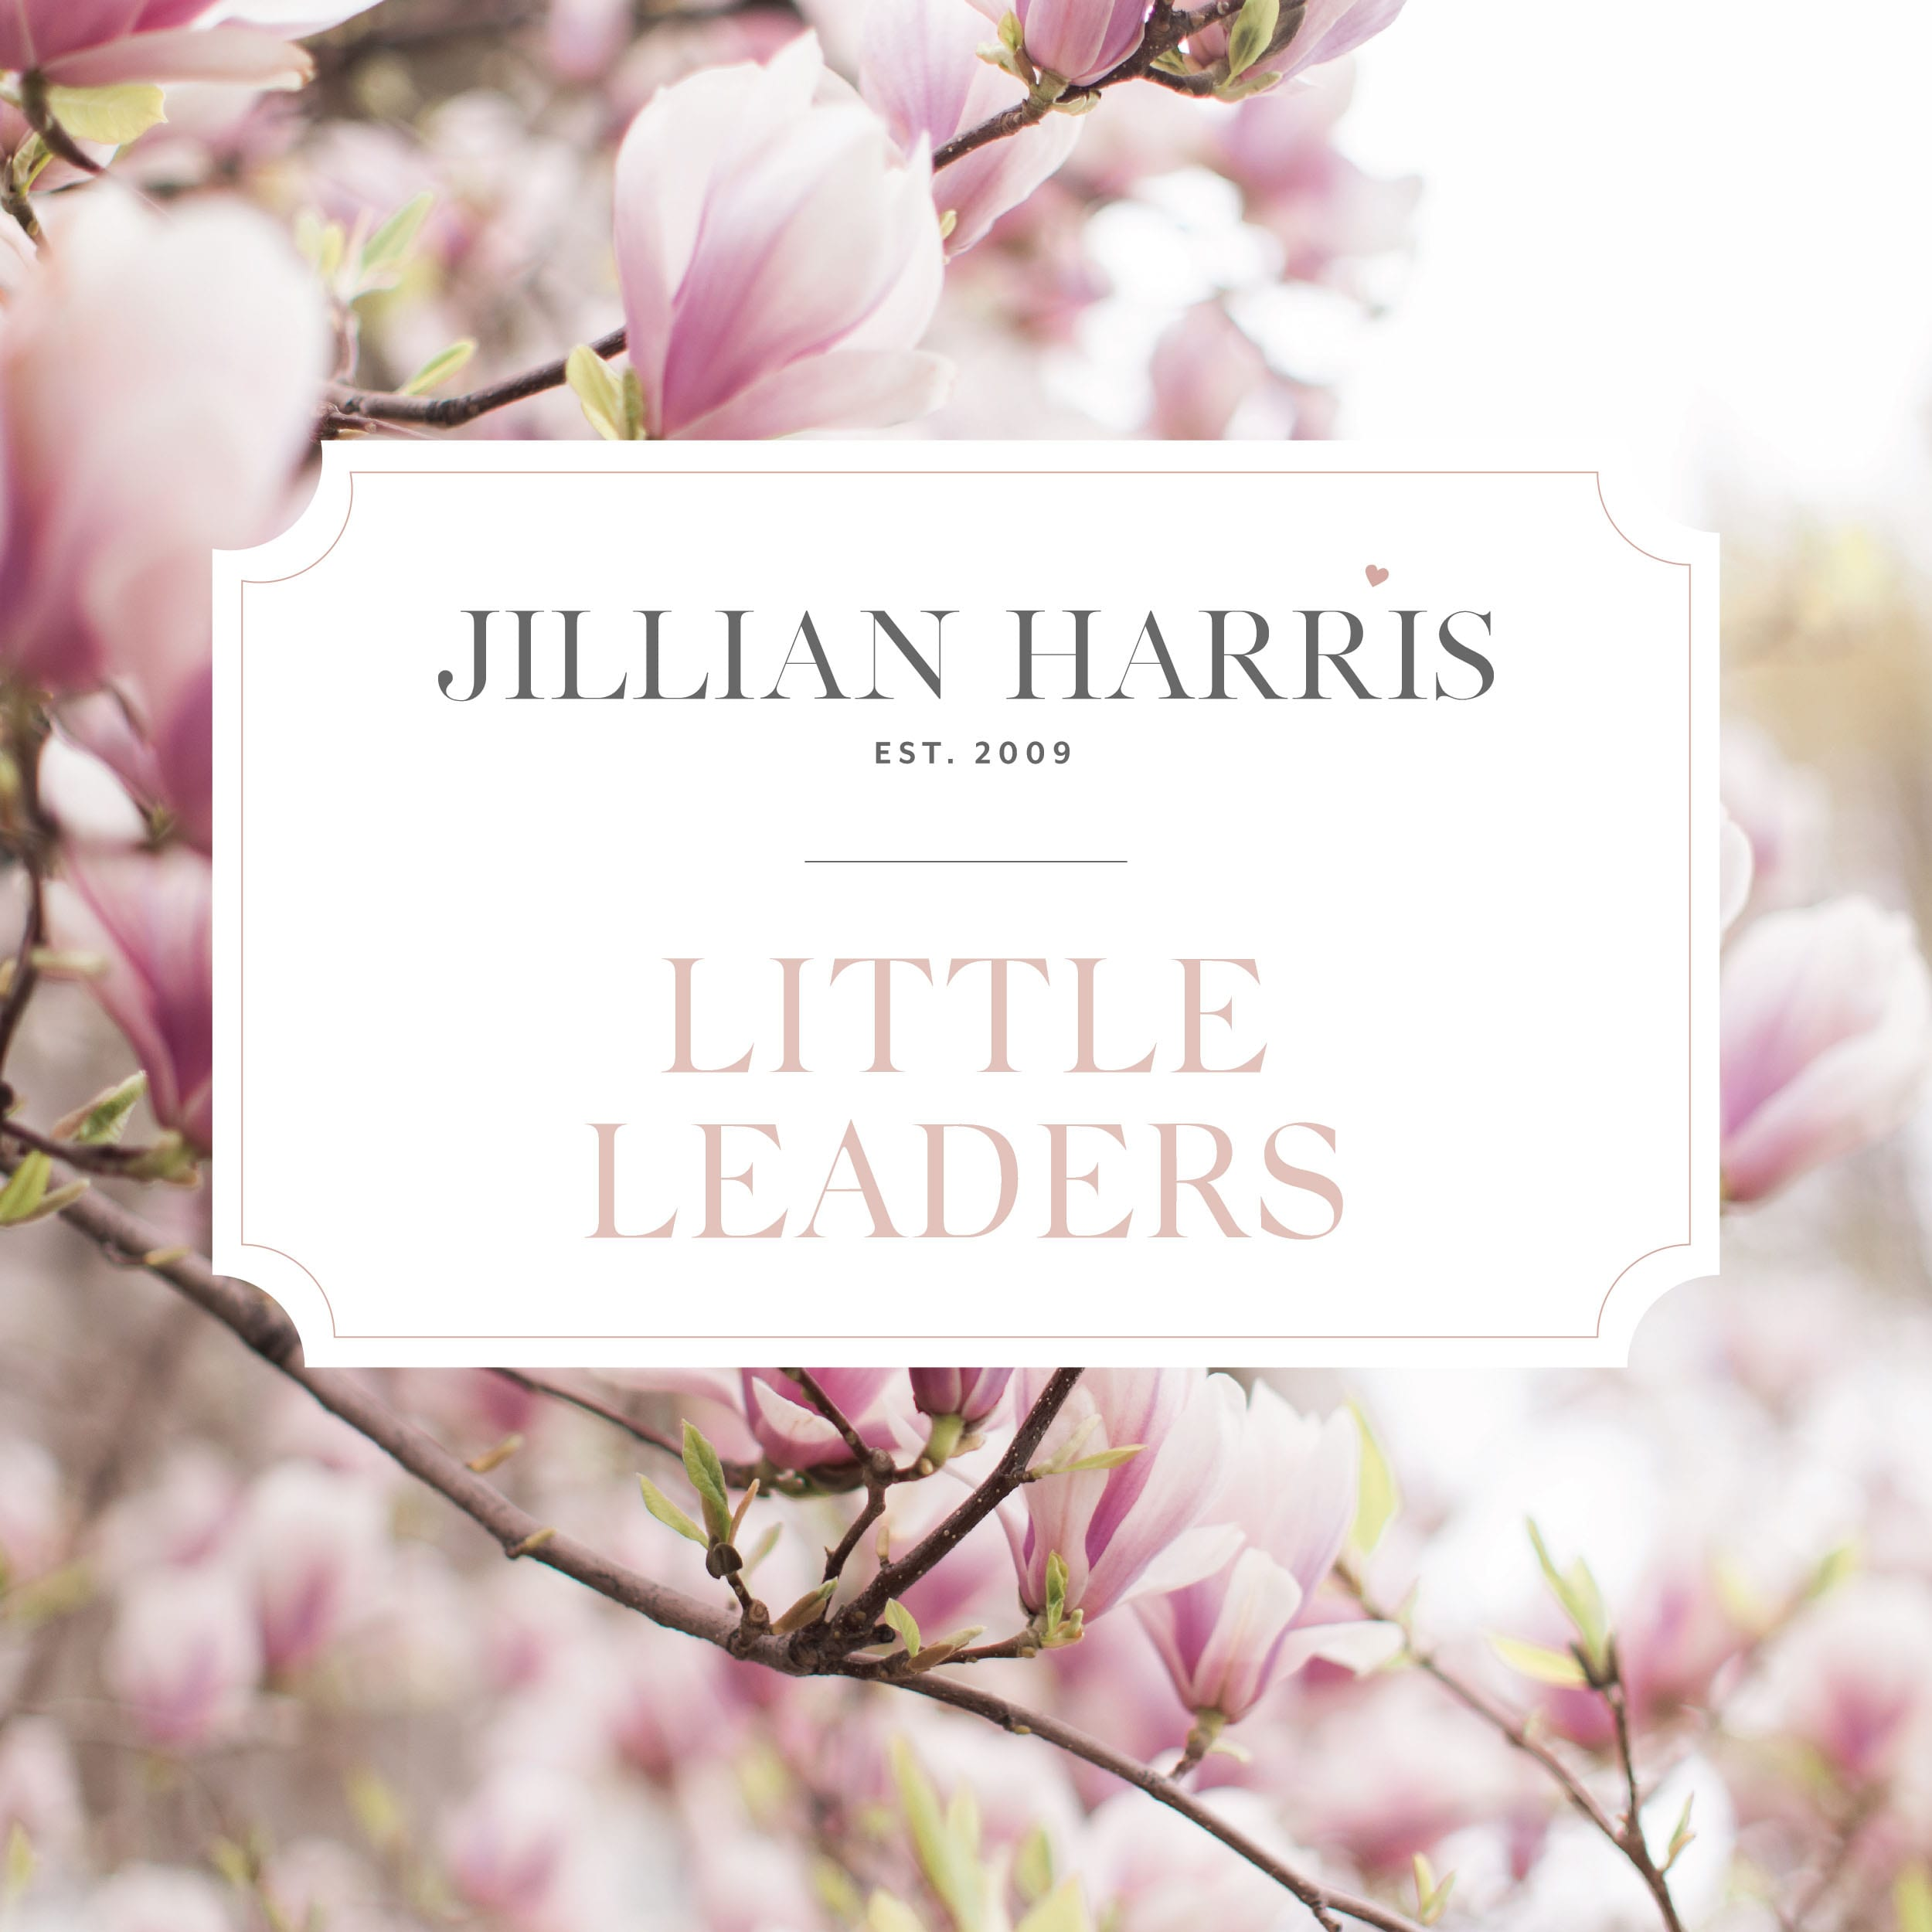 Jillian Harris Little Leader Fay Ebert